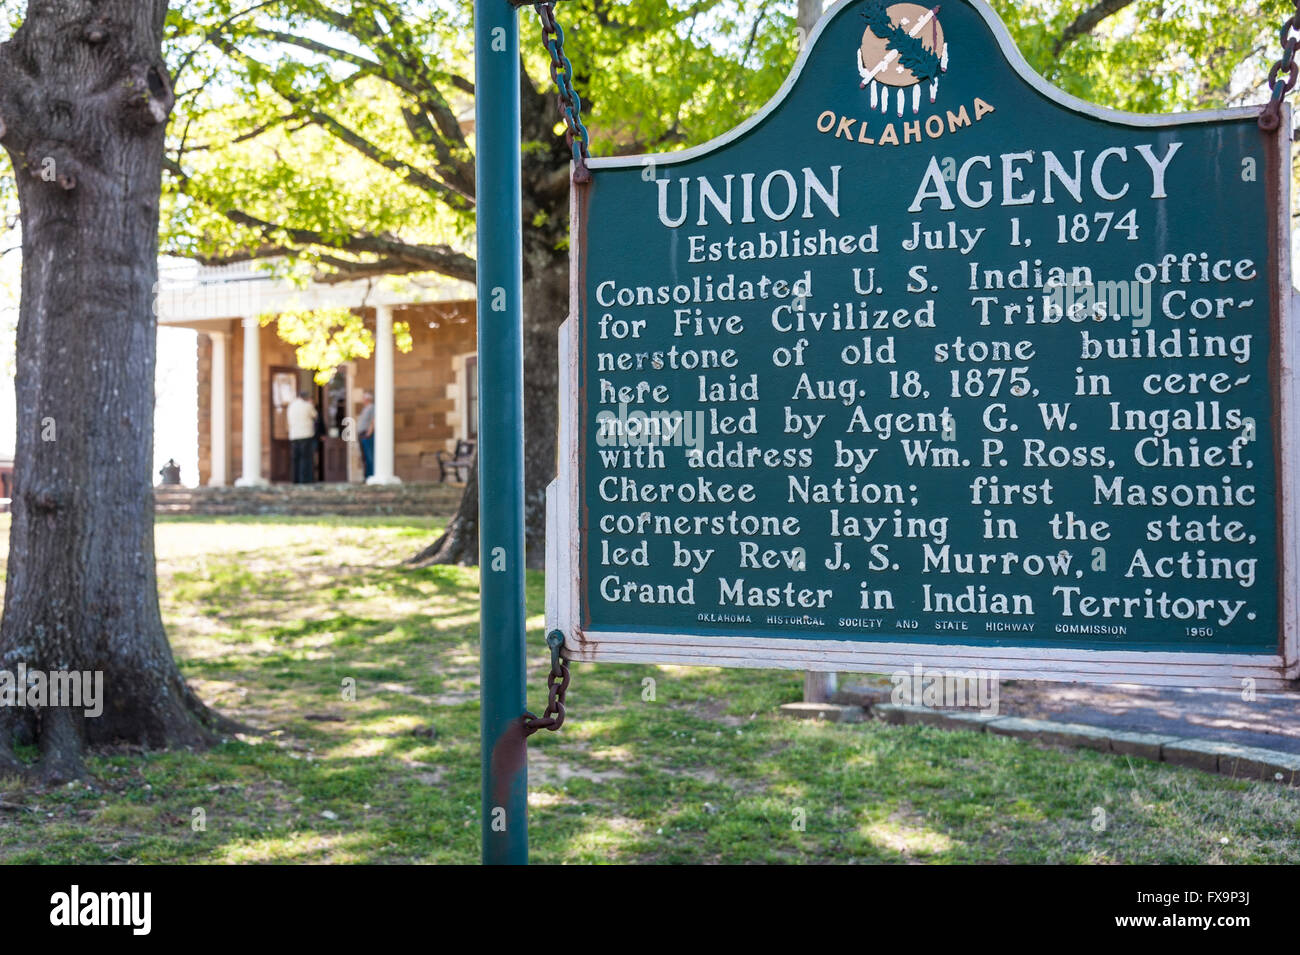 Union Agency historical marker at The Five Civilized Tribes Museum in Muskogee, Oklahoma, USA. Stock Photo